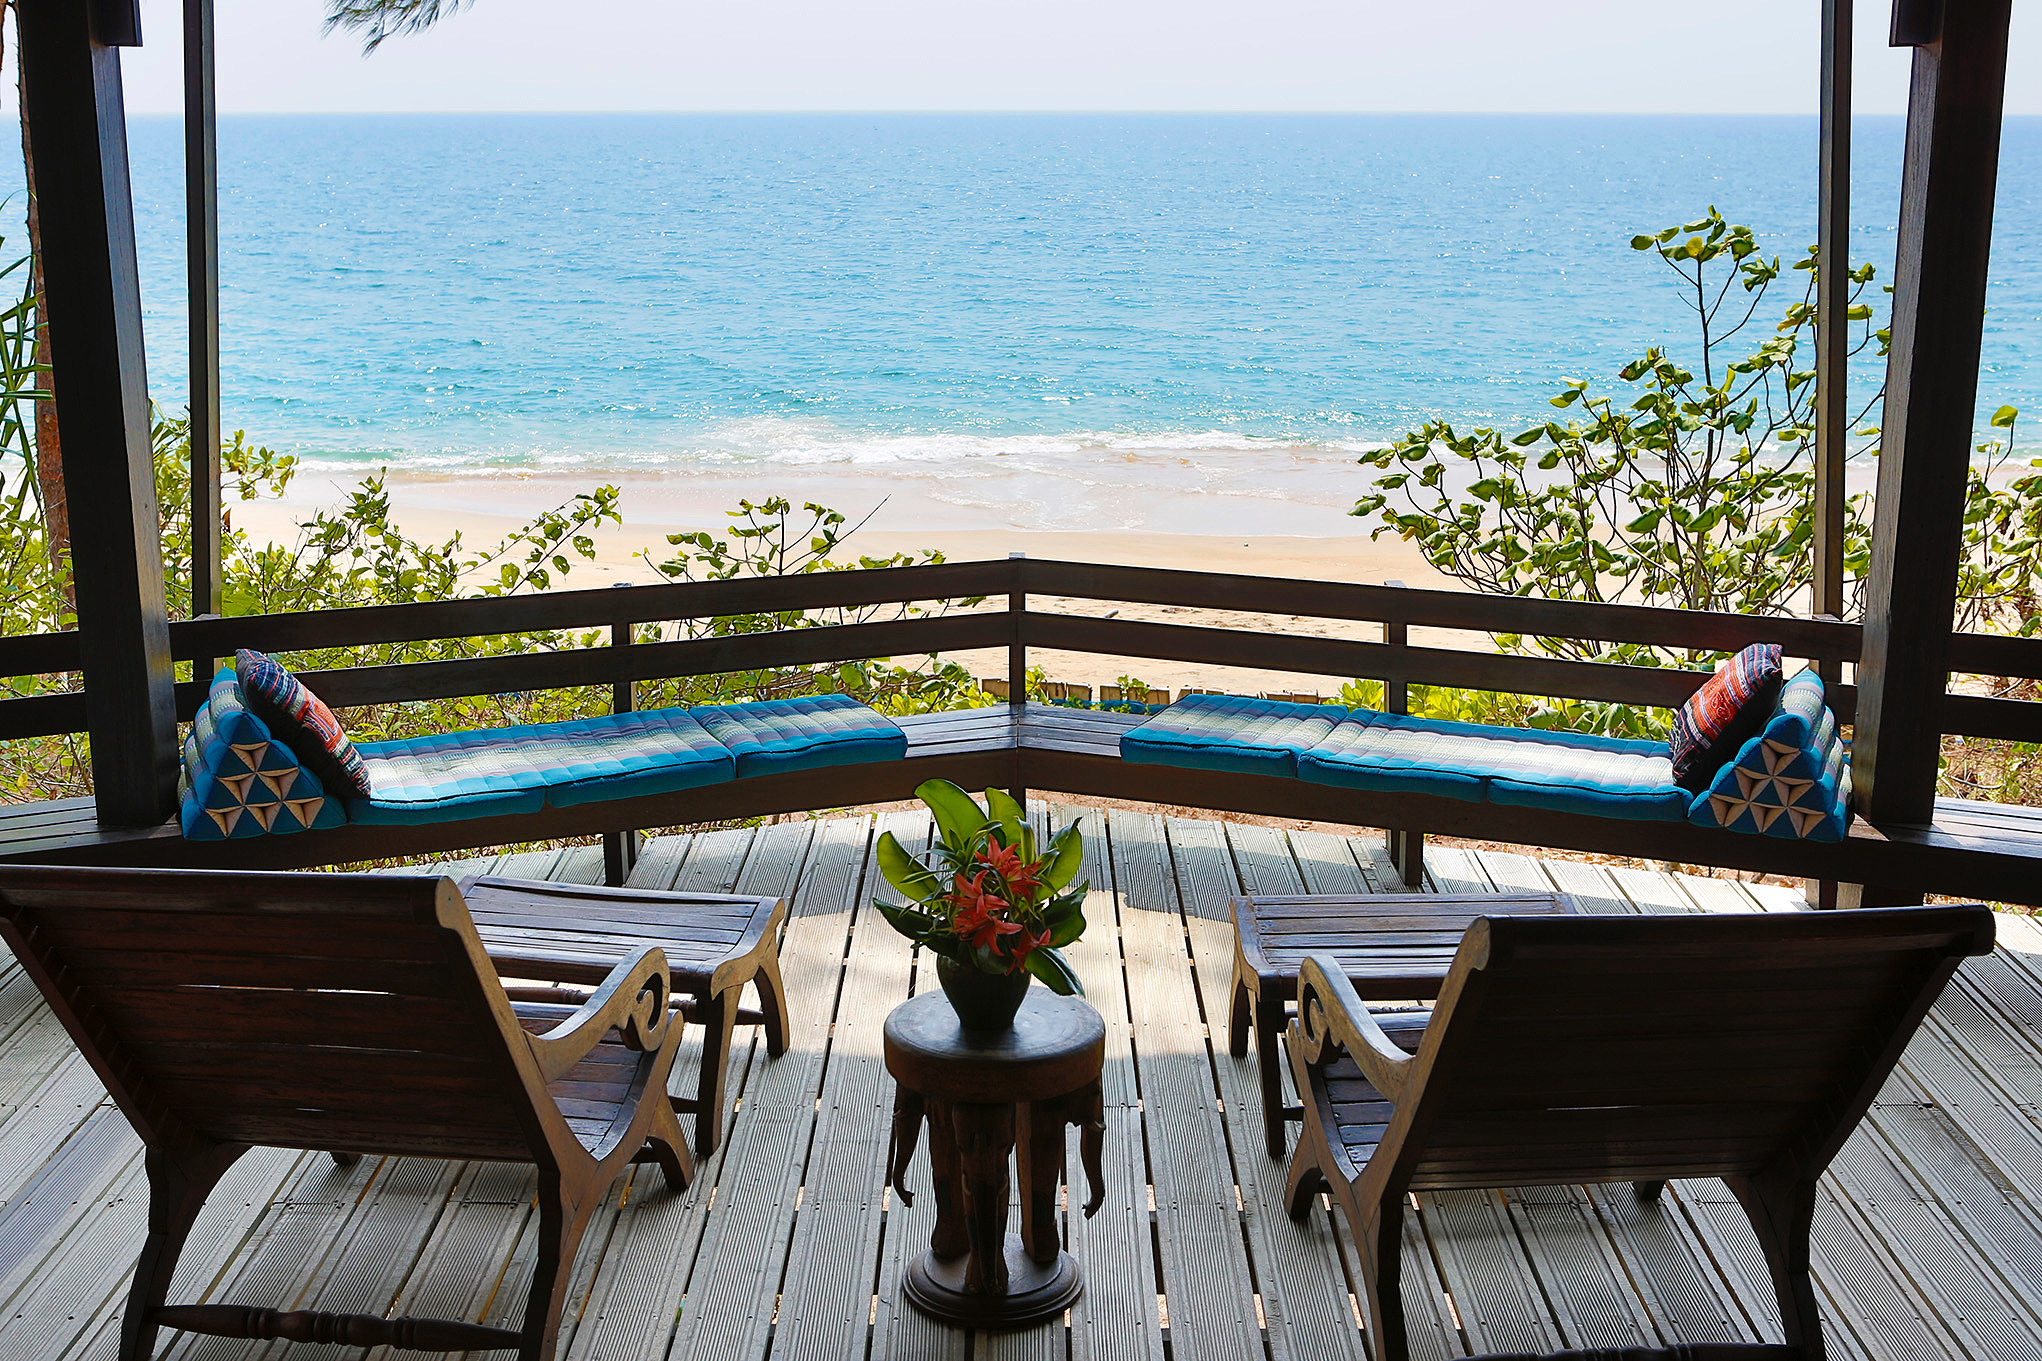 baan seablue I - sleeps 2 people, 3 mns to clubhouse